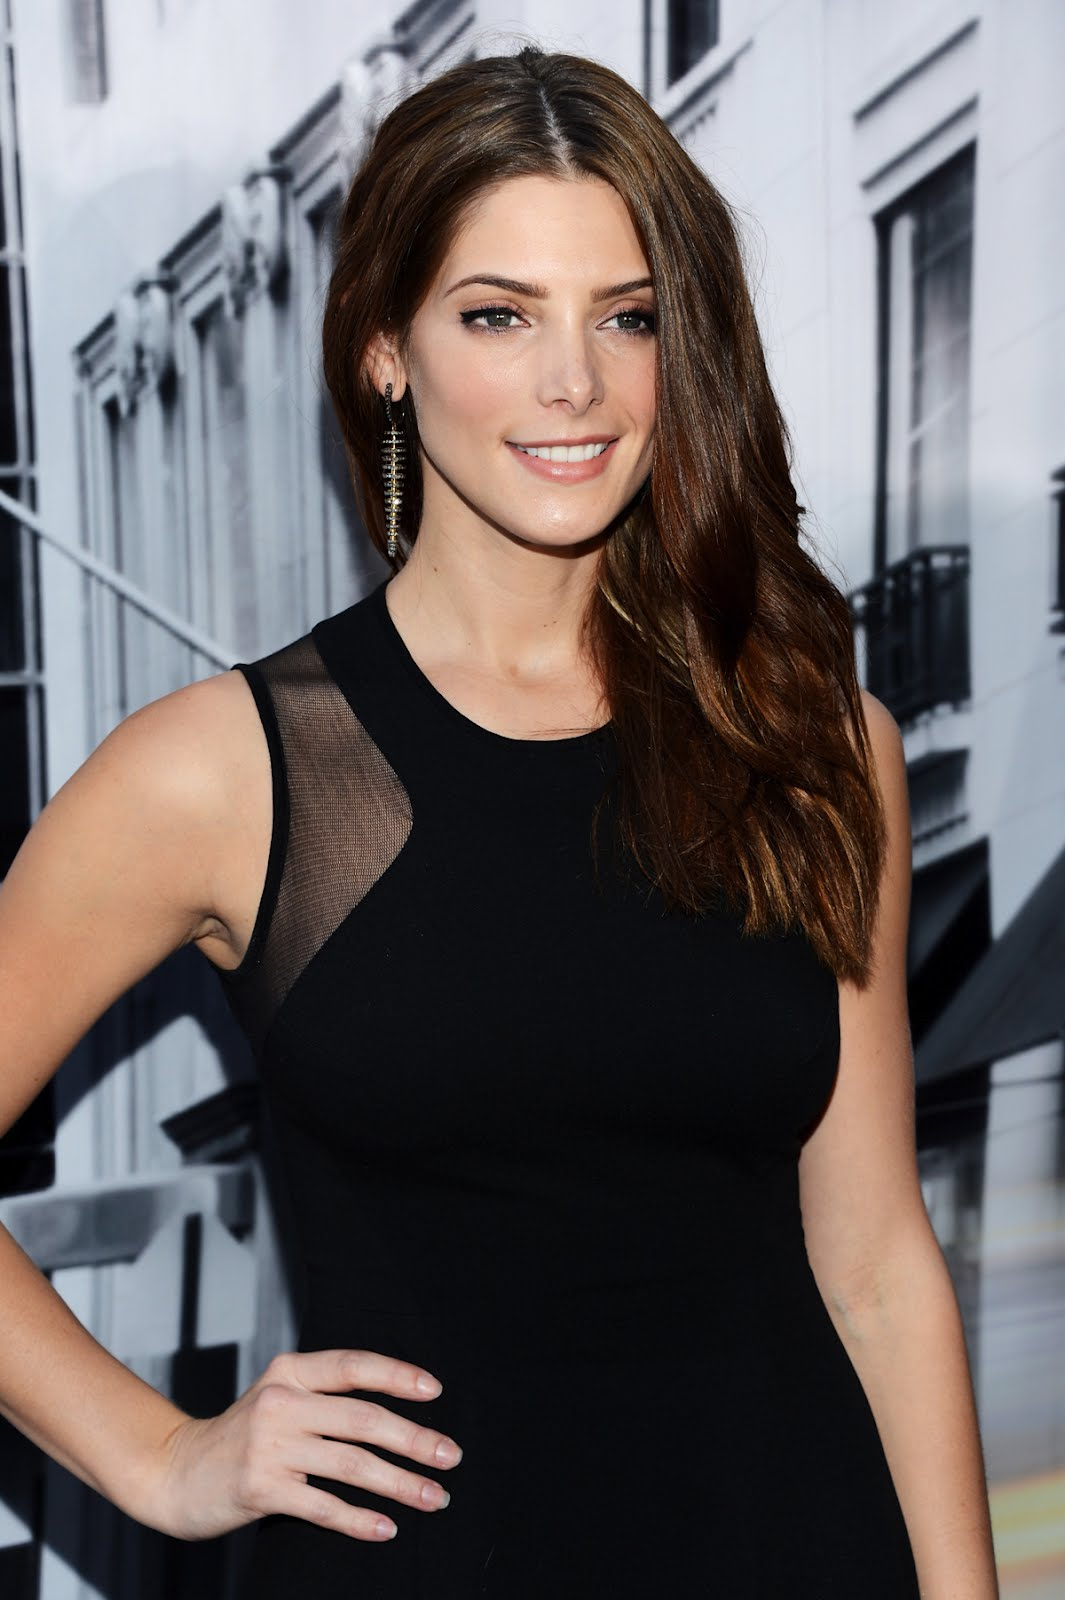 Ashley Greene DKNY Women's Spring 2013 Fashion Show ...